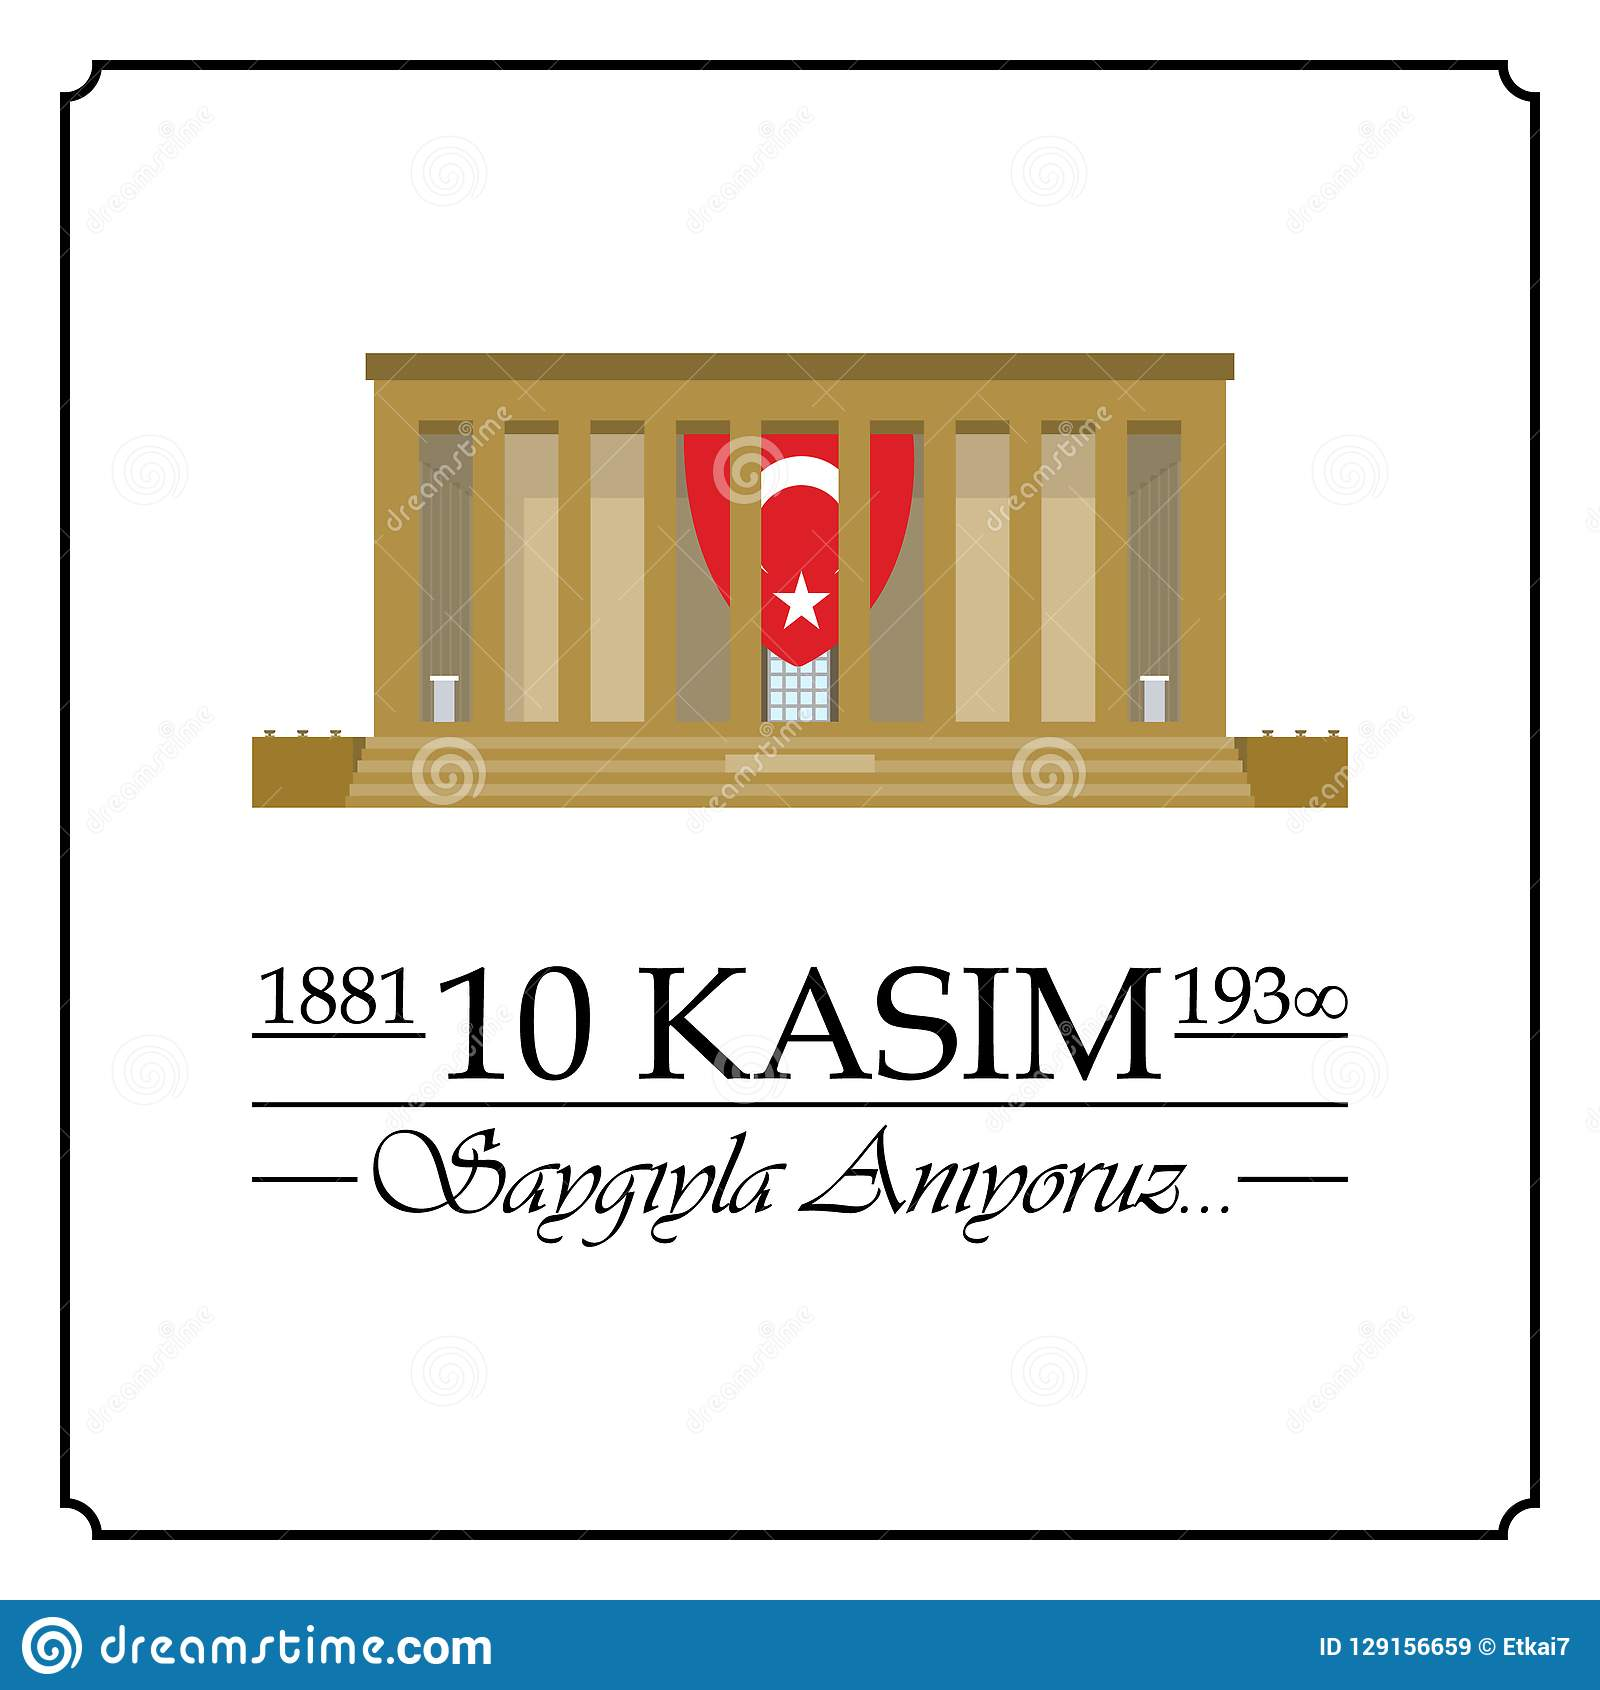 10 November, Mustafa Kemal Ataturk Death Day-verjaardag